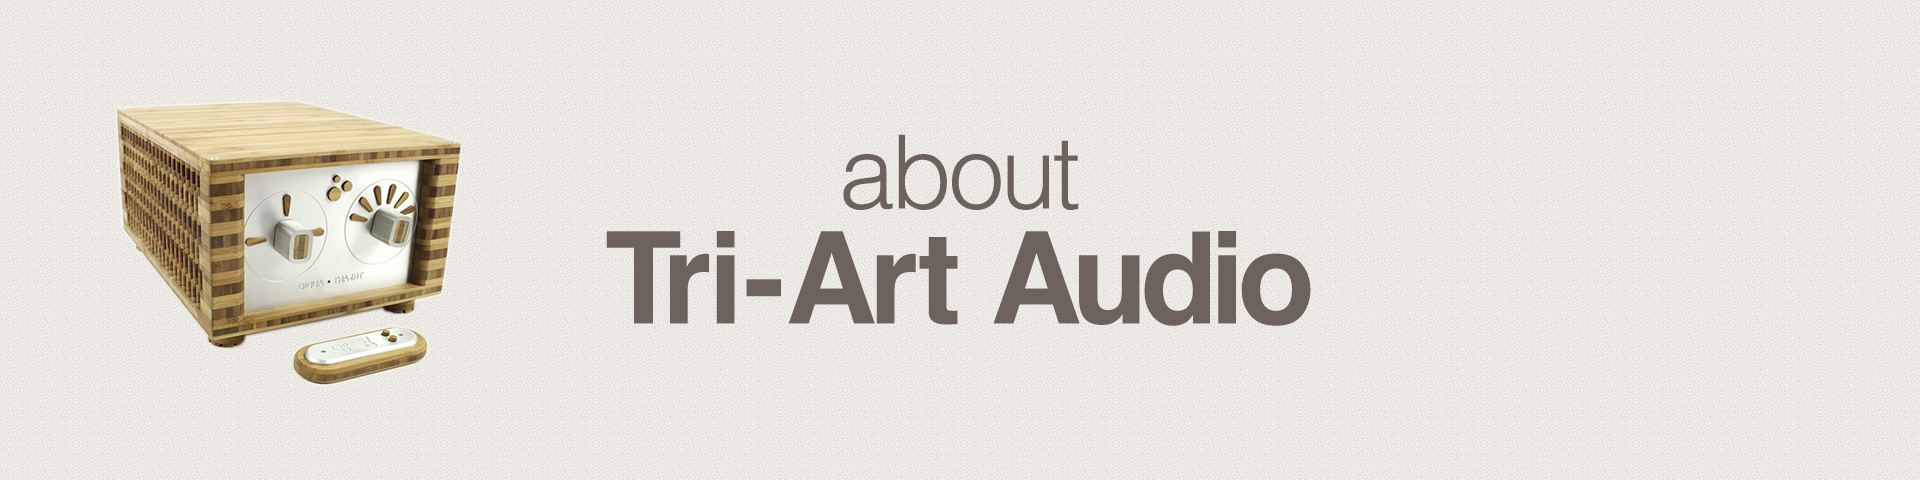 about tri-art audio header